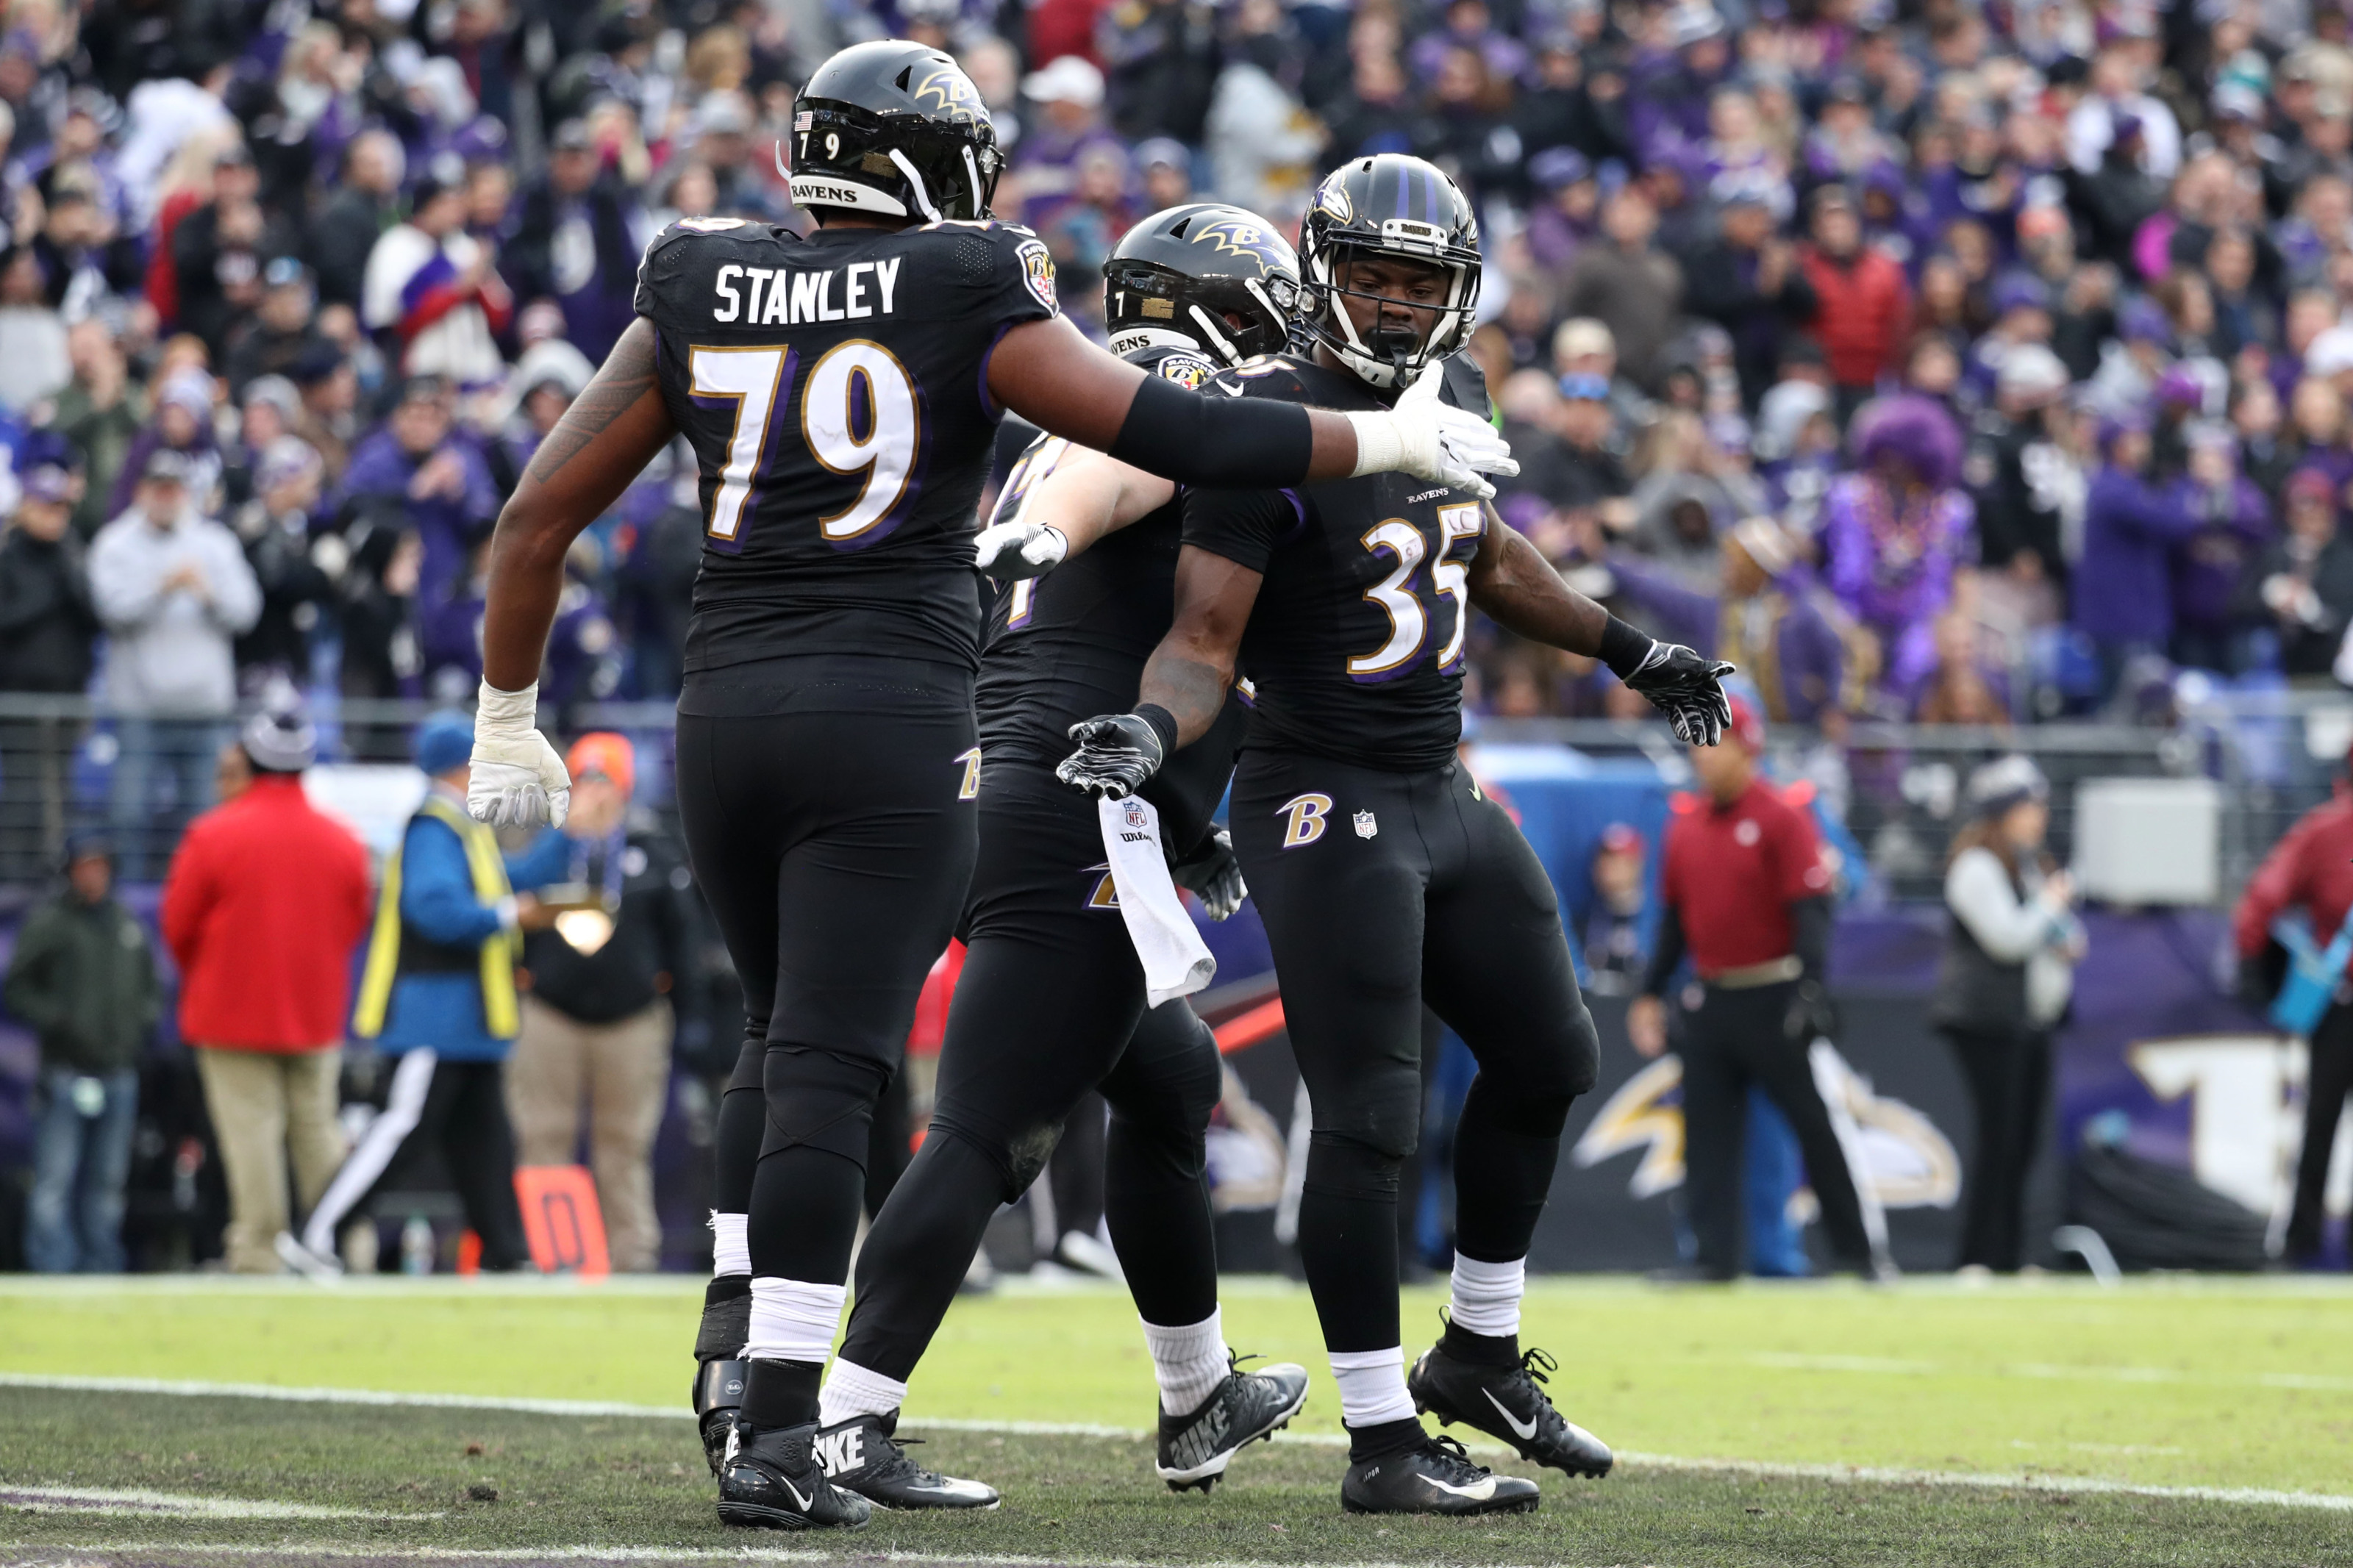 Gus Edwards is the most underrated Baltimore Ravens player